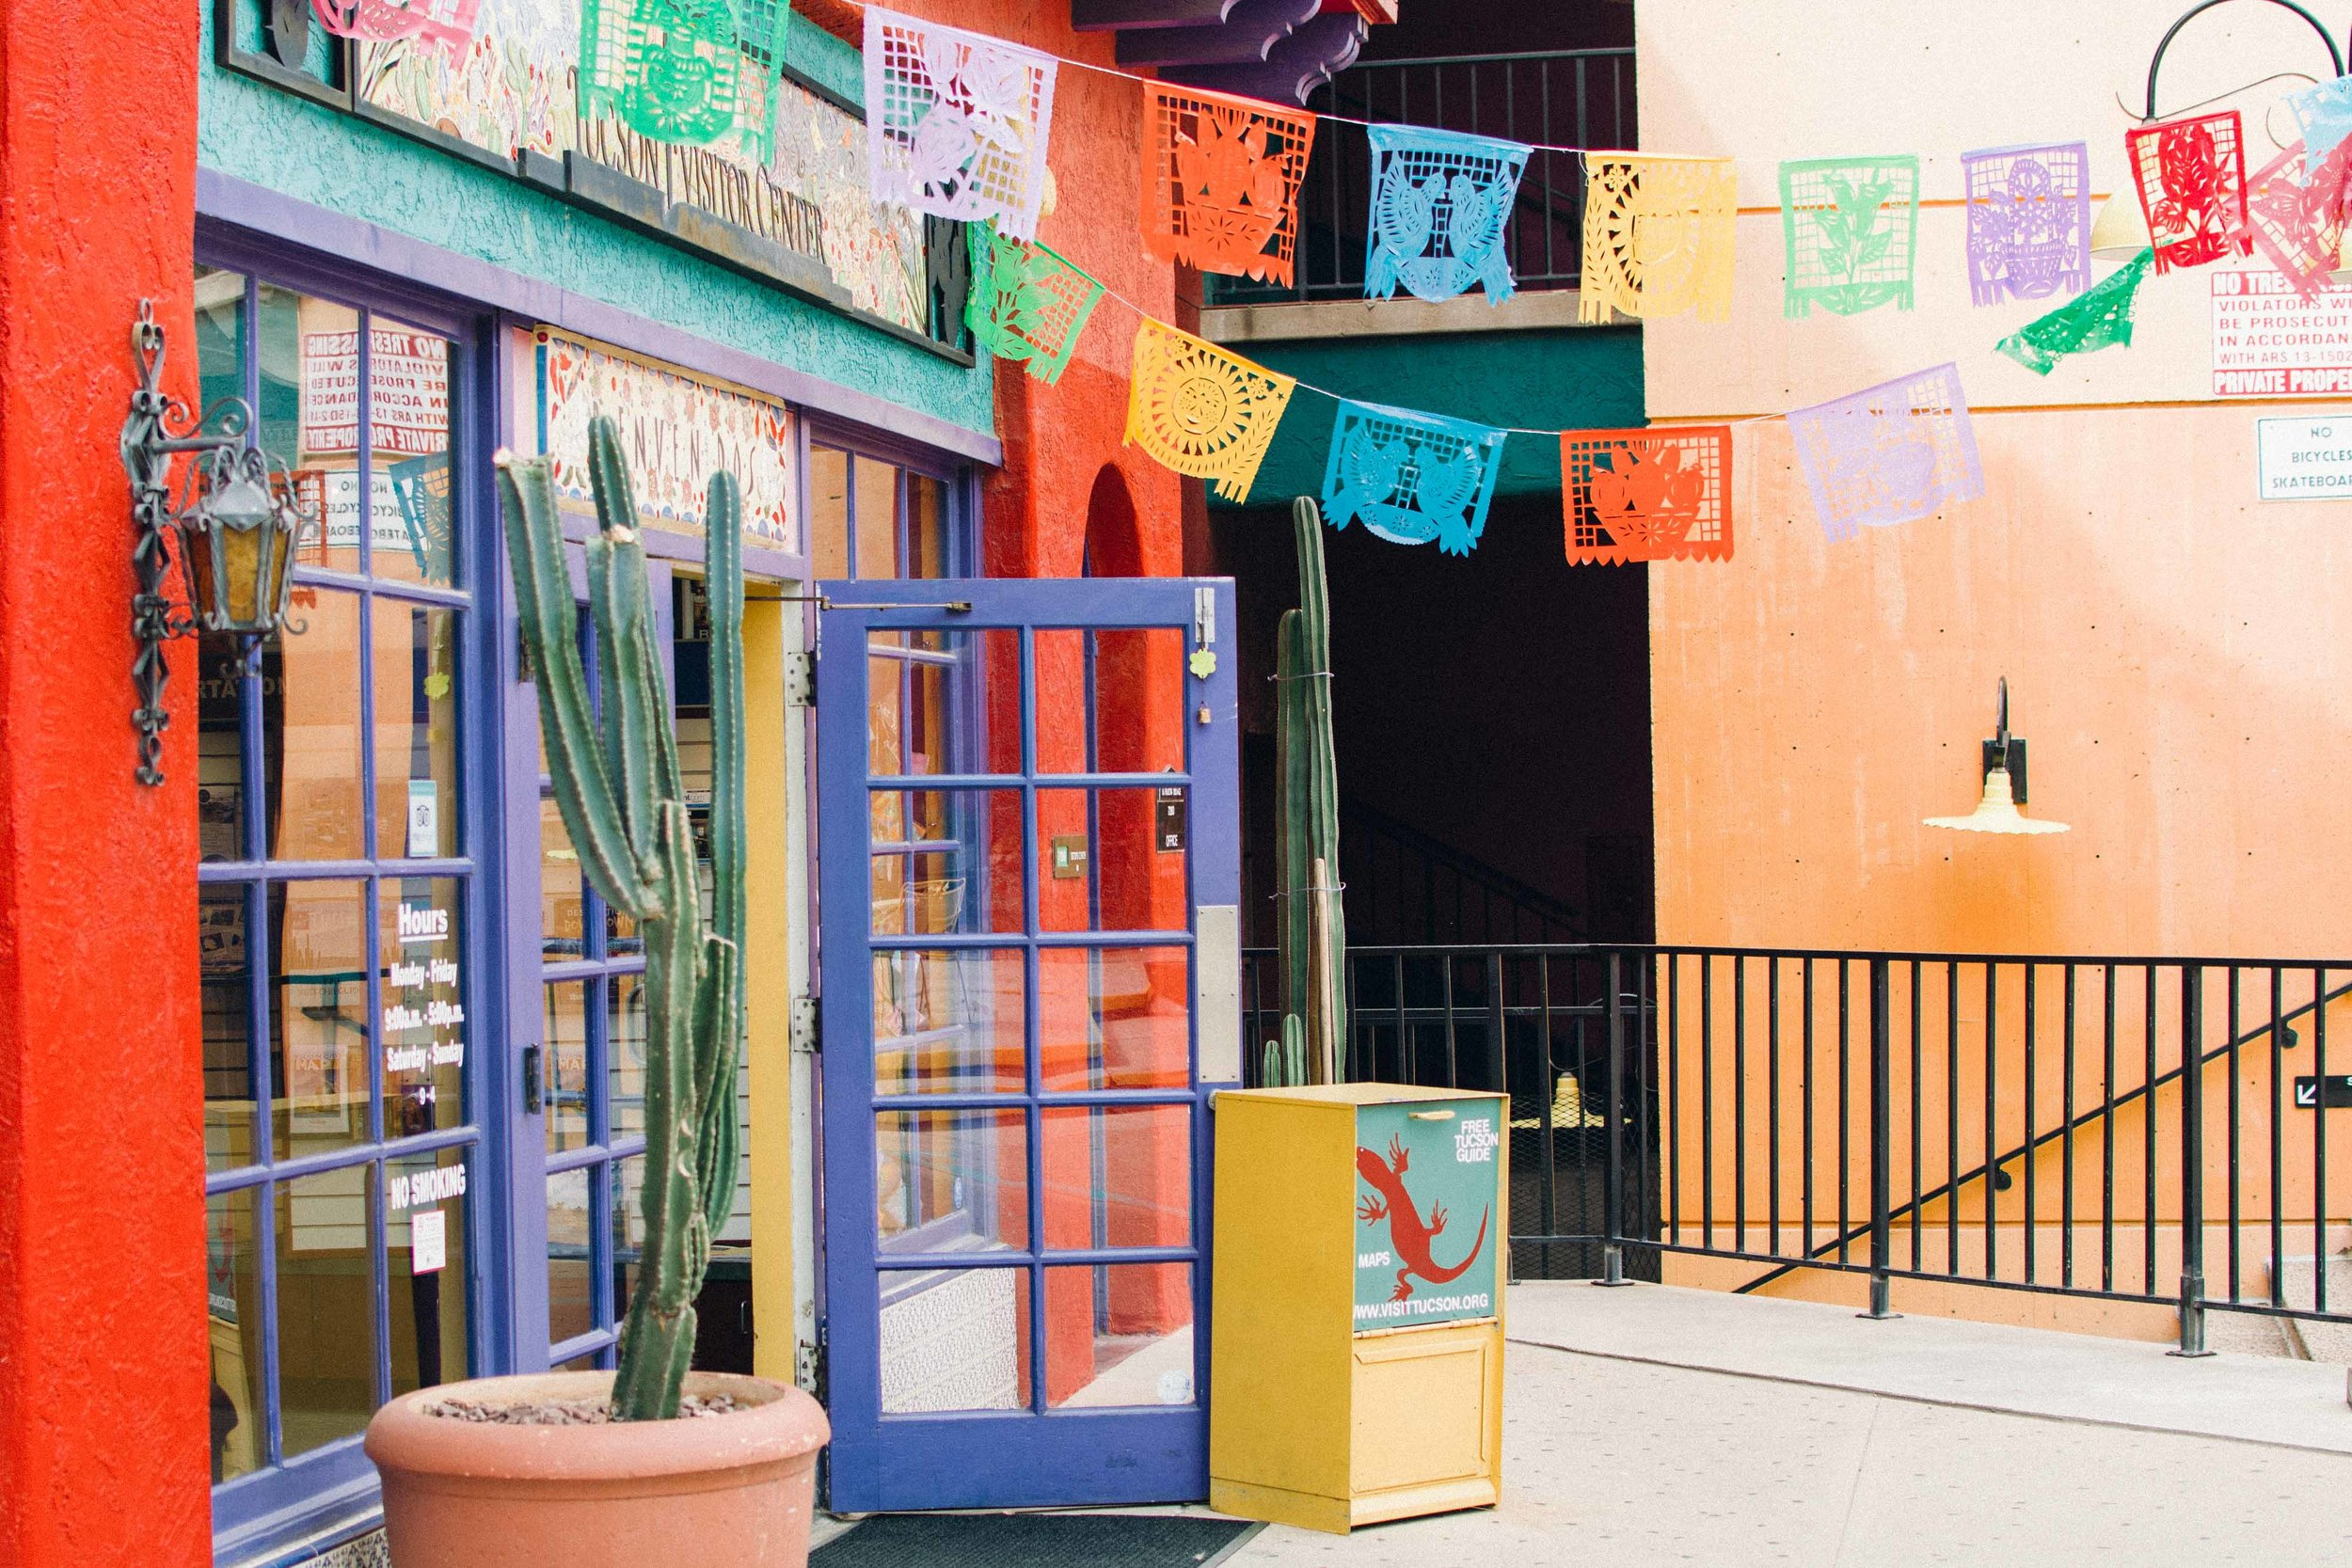 La Placita, Tucson, Arizona